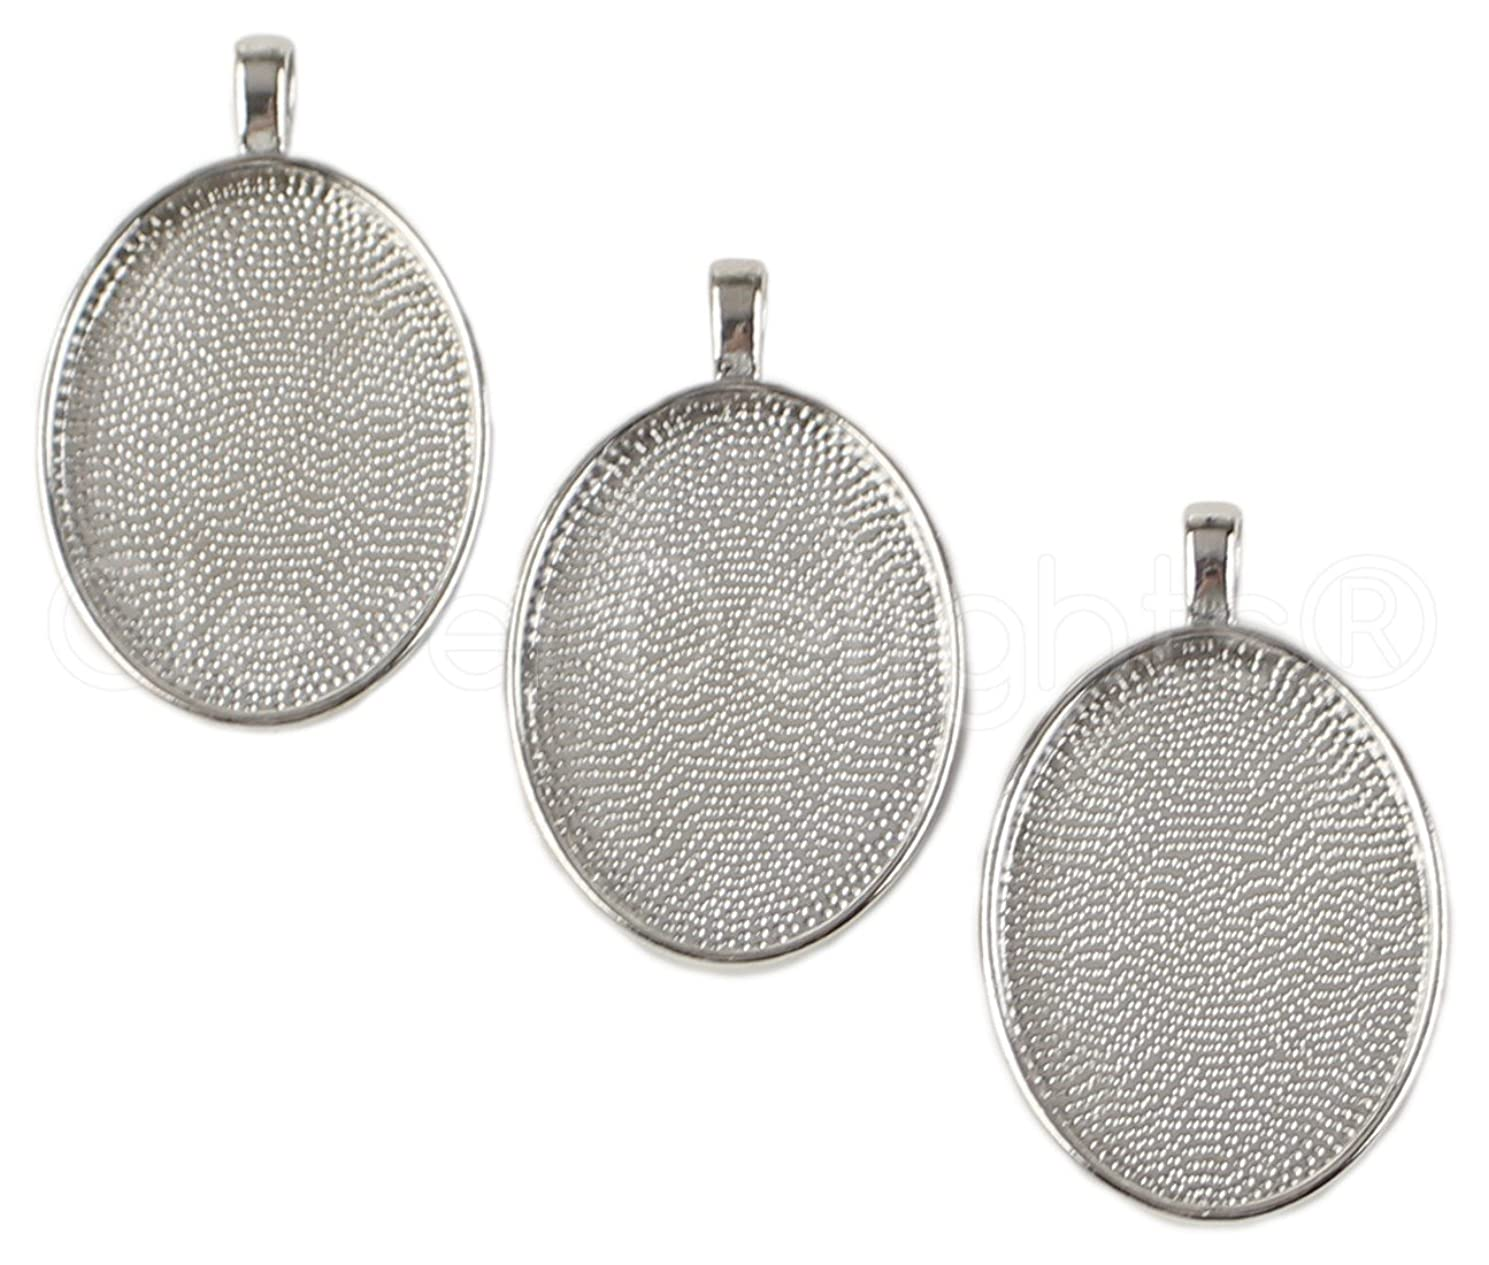 CleverDelights 20 Pack Oval Pendant Trays - Platinum Silver Color - 22x30mm - Pendant Blanks Cameo Bezel Settings - Custom Jewelry Making 22mm x 30mm